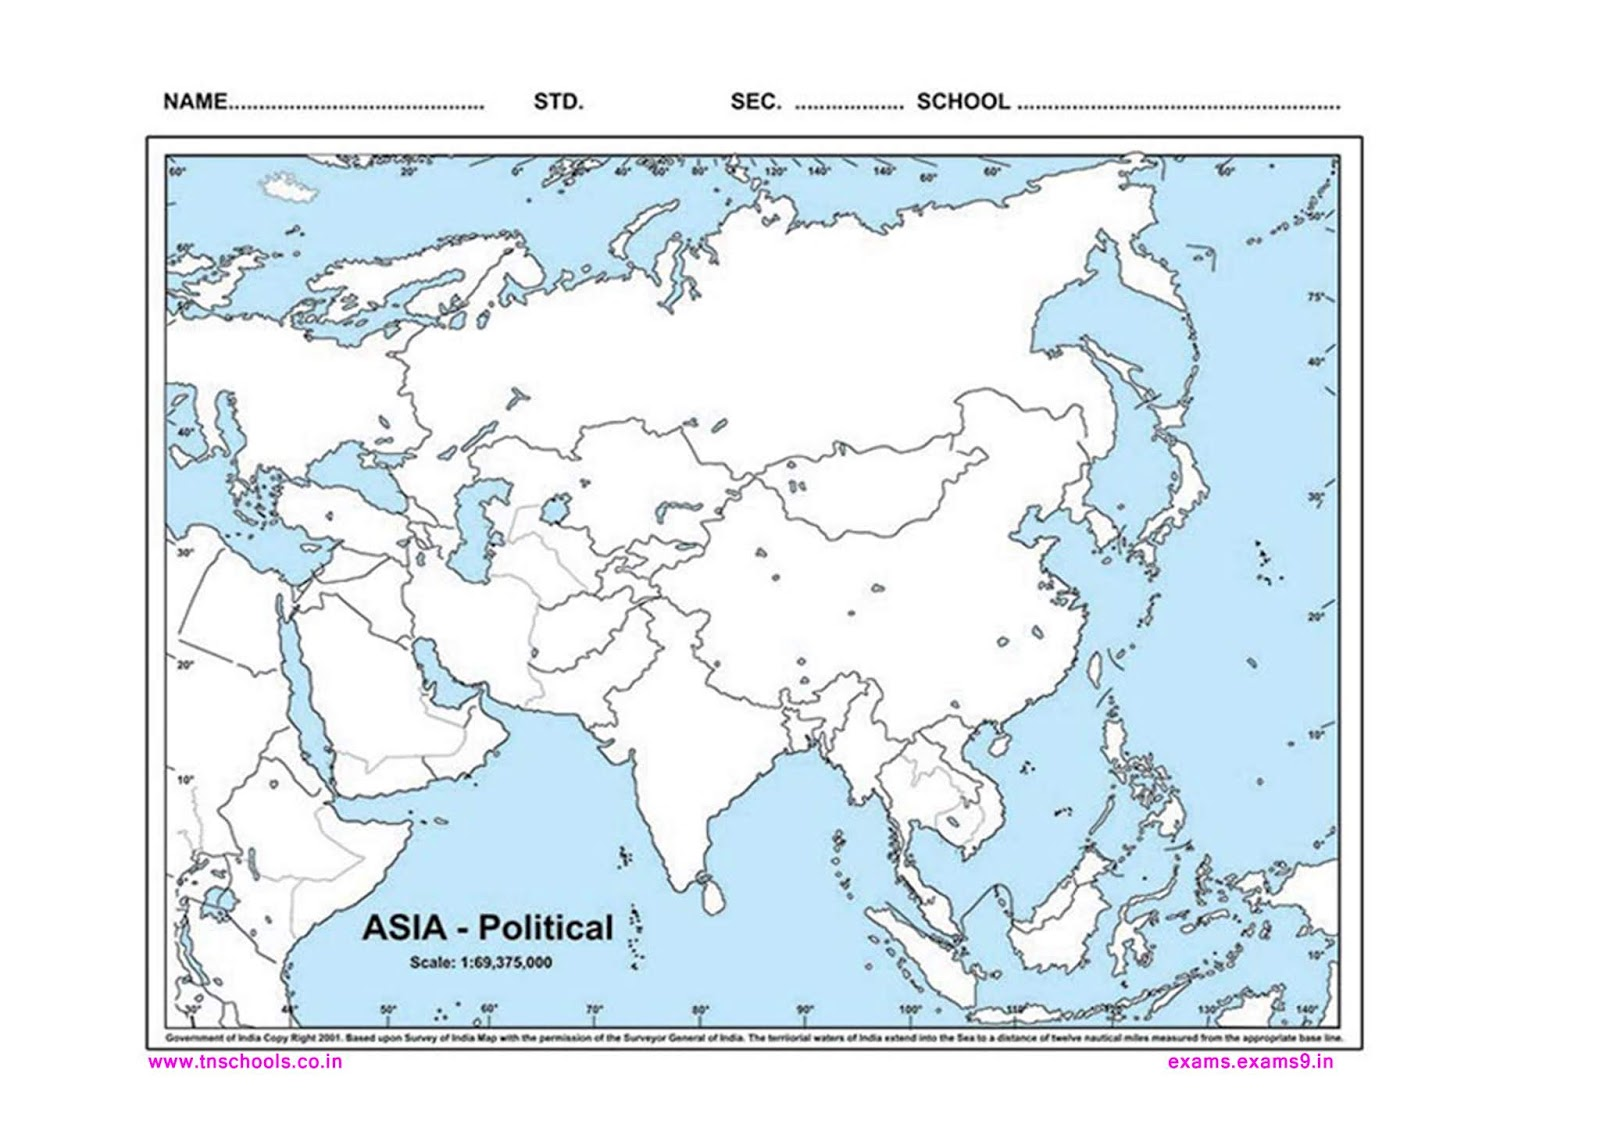 Asia Political Outline Map For School Students Tnschools